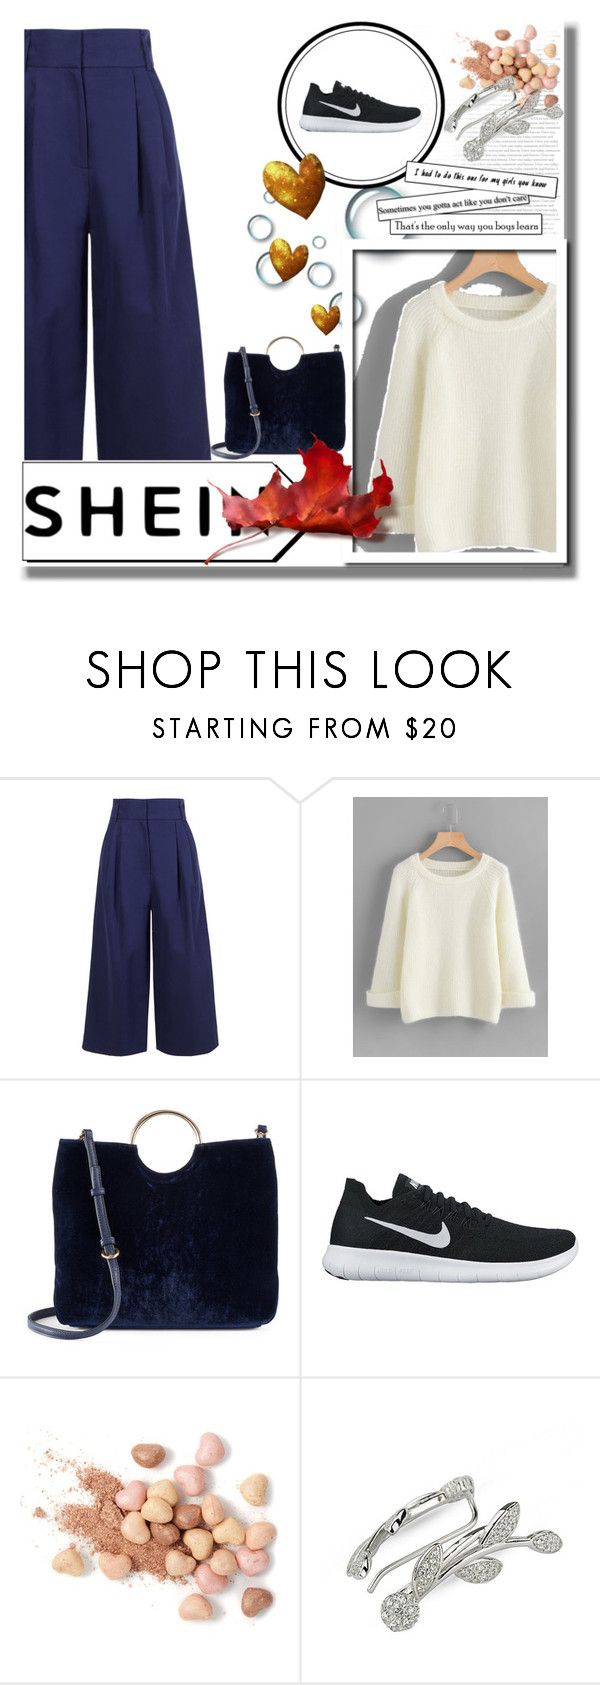 """""""Sheinaside"""" by zanfila12 ❤ liked on Polyvore featuring TIBI, LC Lauren Conrad, NIKE and Too Faced Cosmetics"""